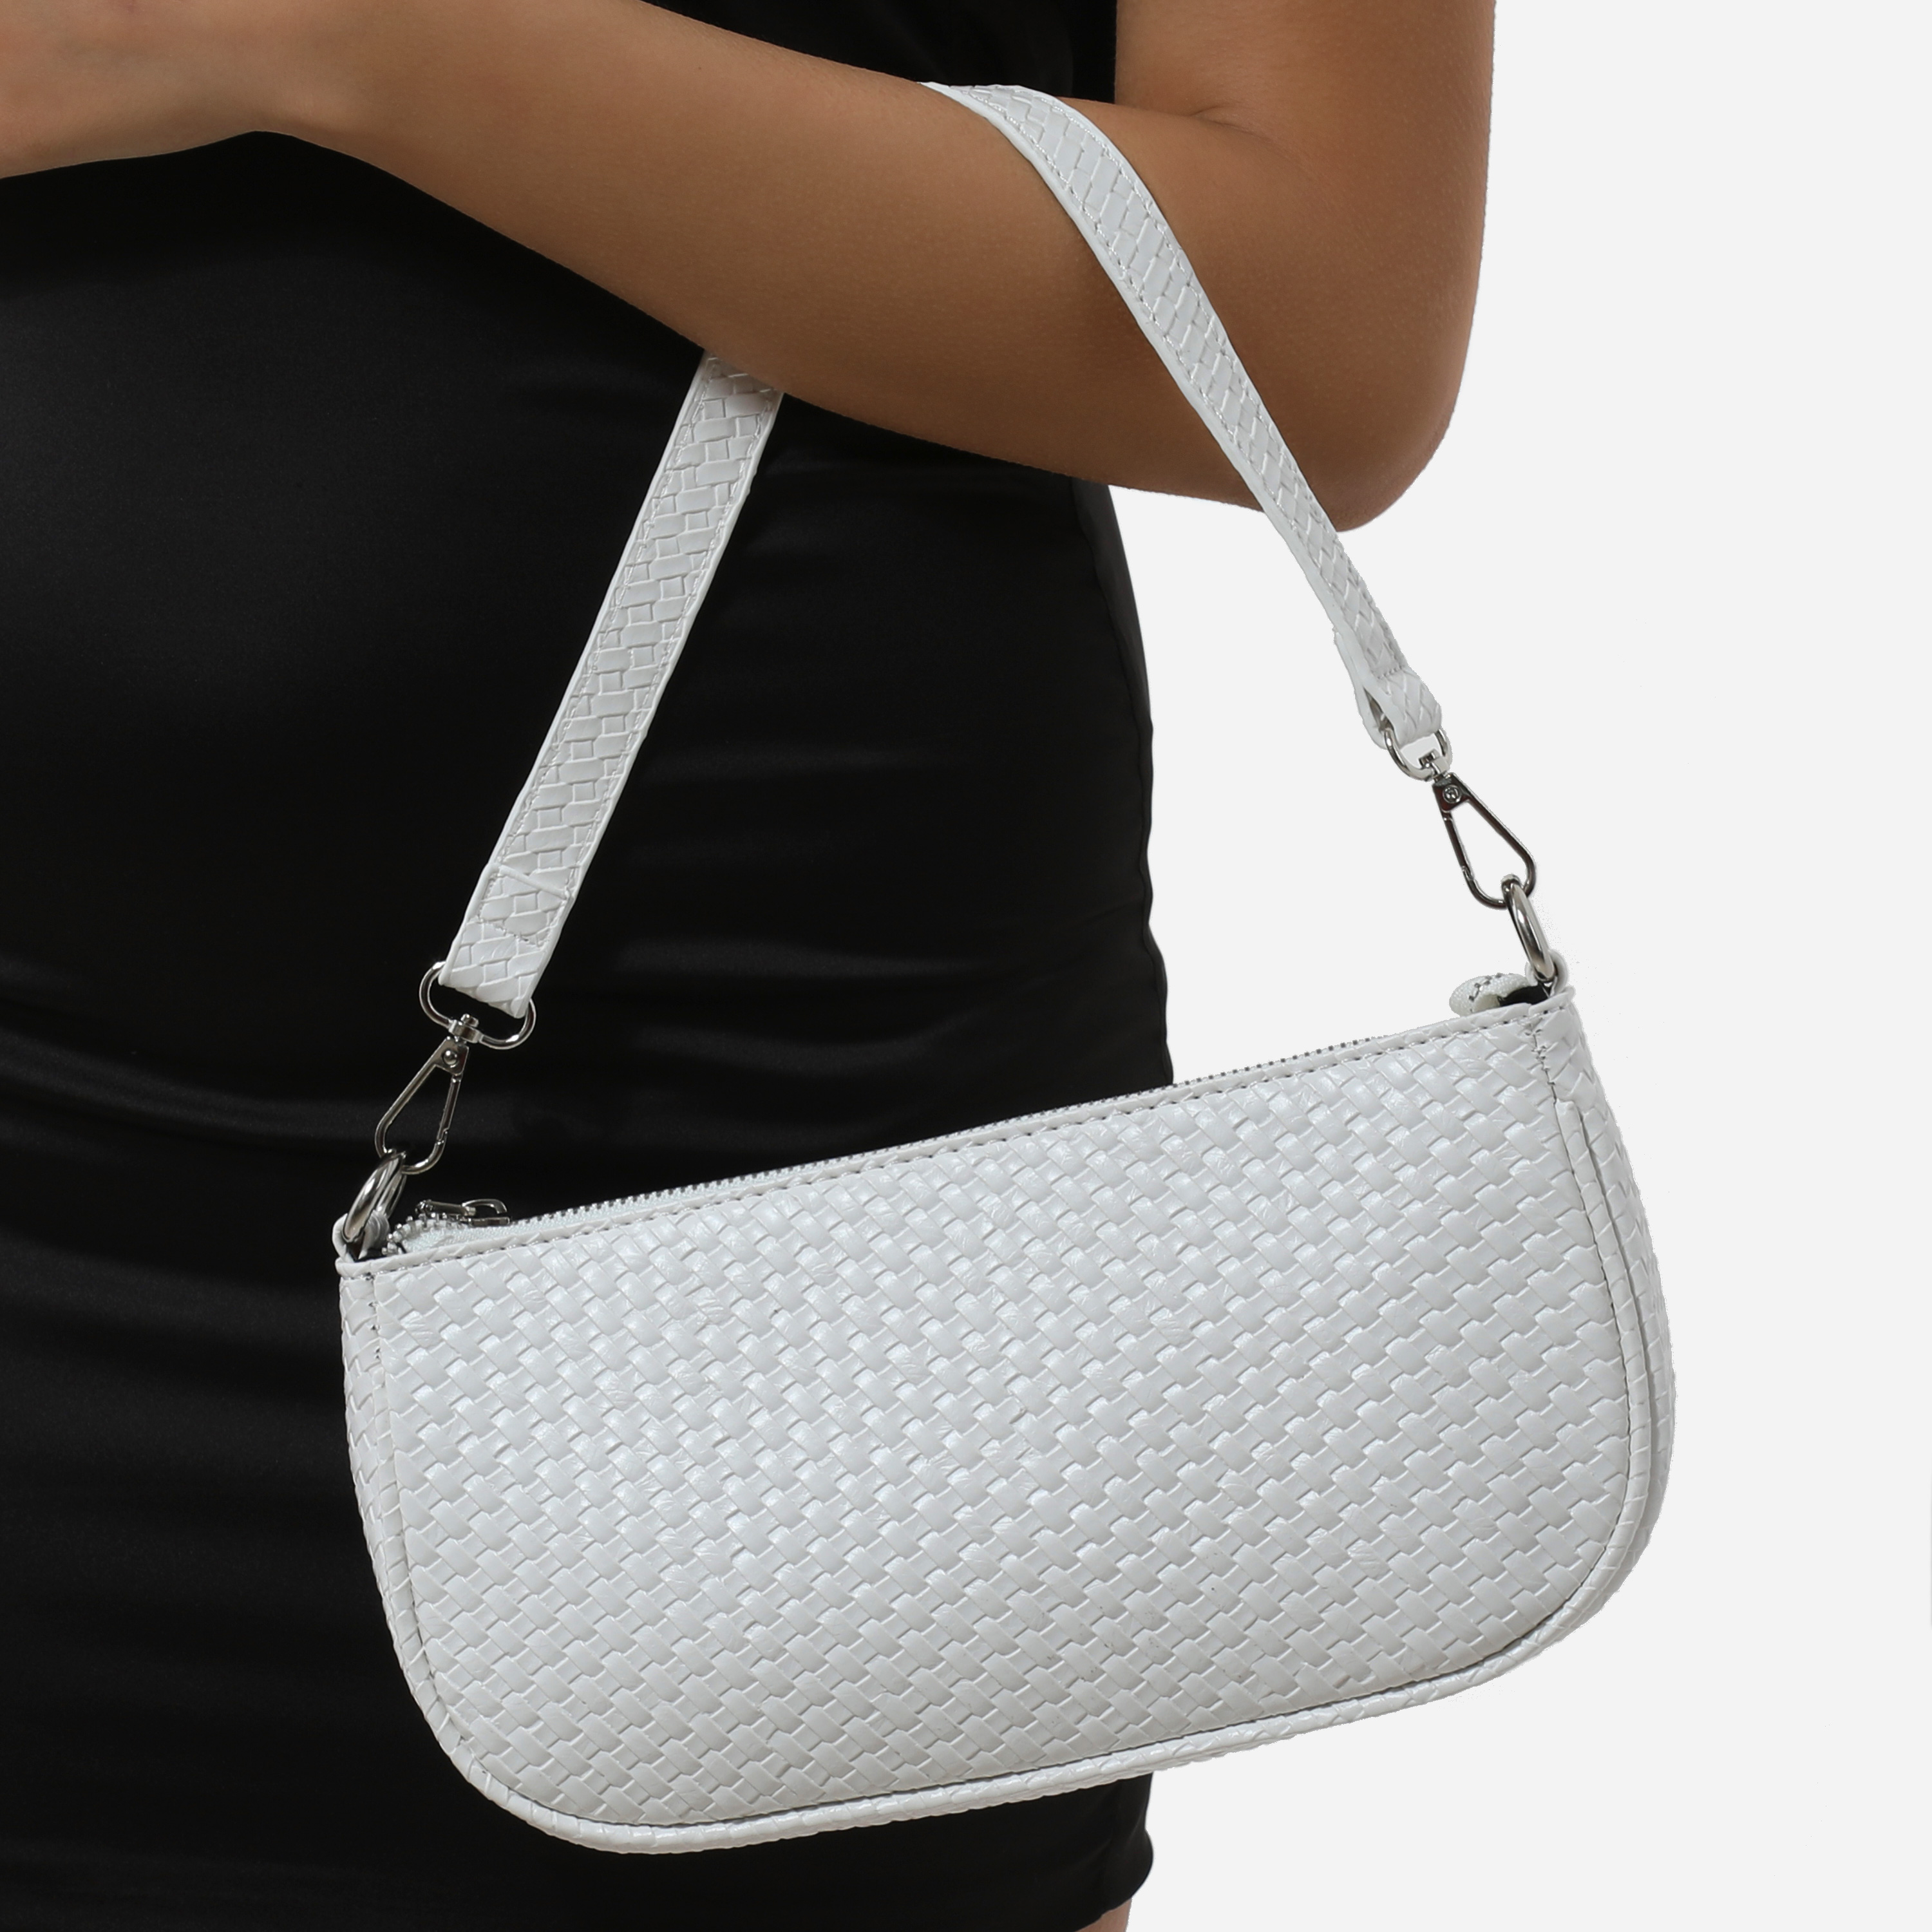 Woven Baguette Shoulder Bag In White Faux Leather